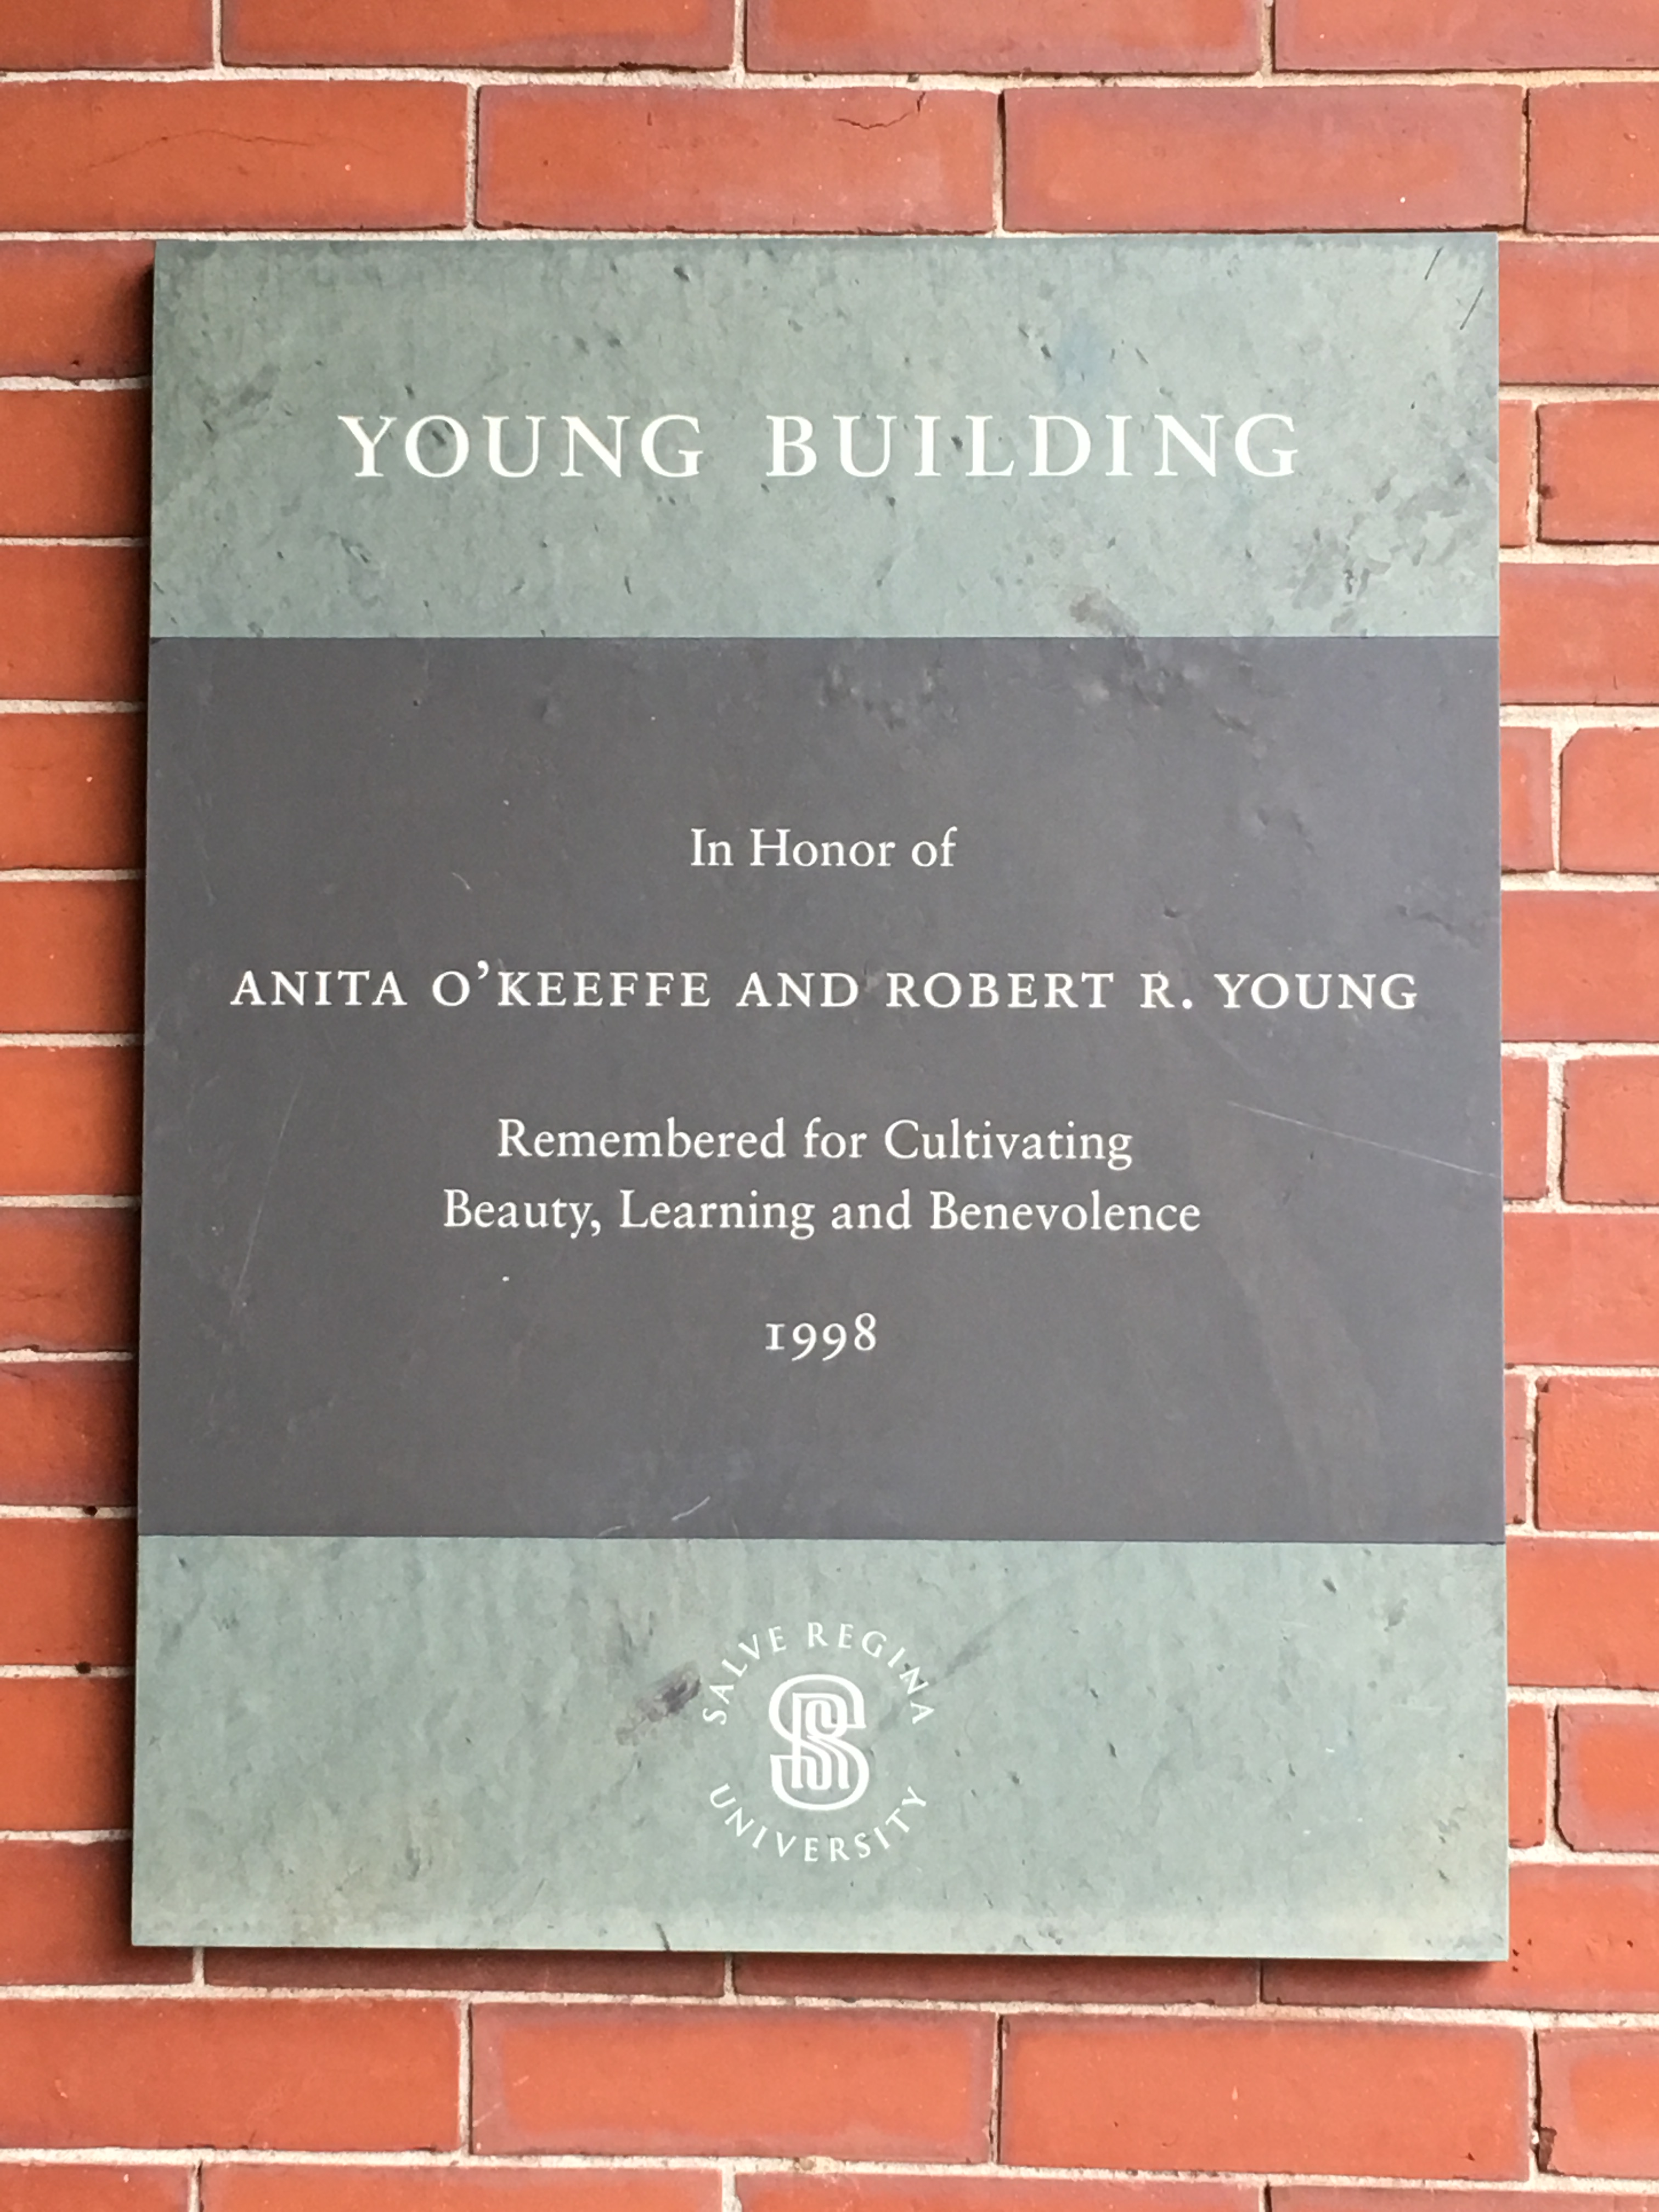 The dedication plaque from Salve Regina University to benefactors Anita O'Keefe and Robert R. Young. This plague faces Bellevue Avenue and hangs to the right of the front door of what is now referred to as the Young Building/ Pell Center.